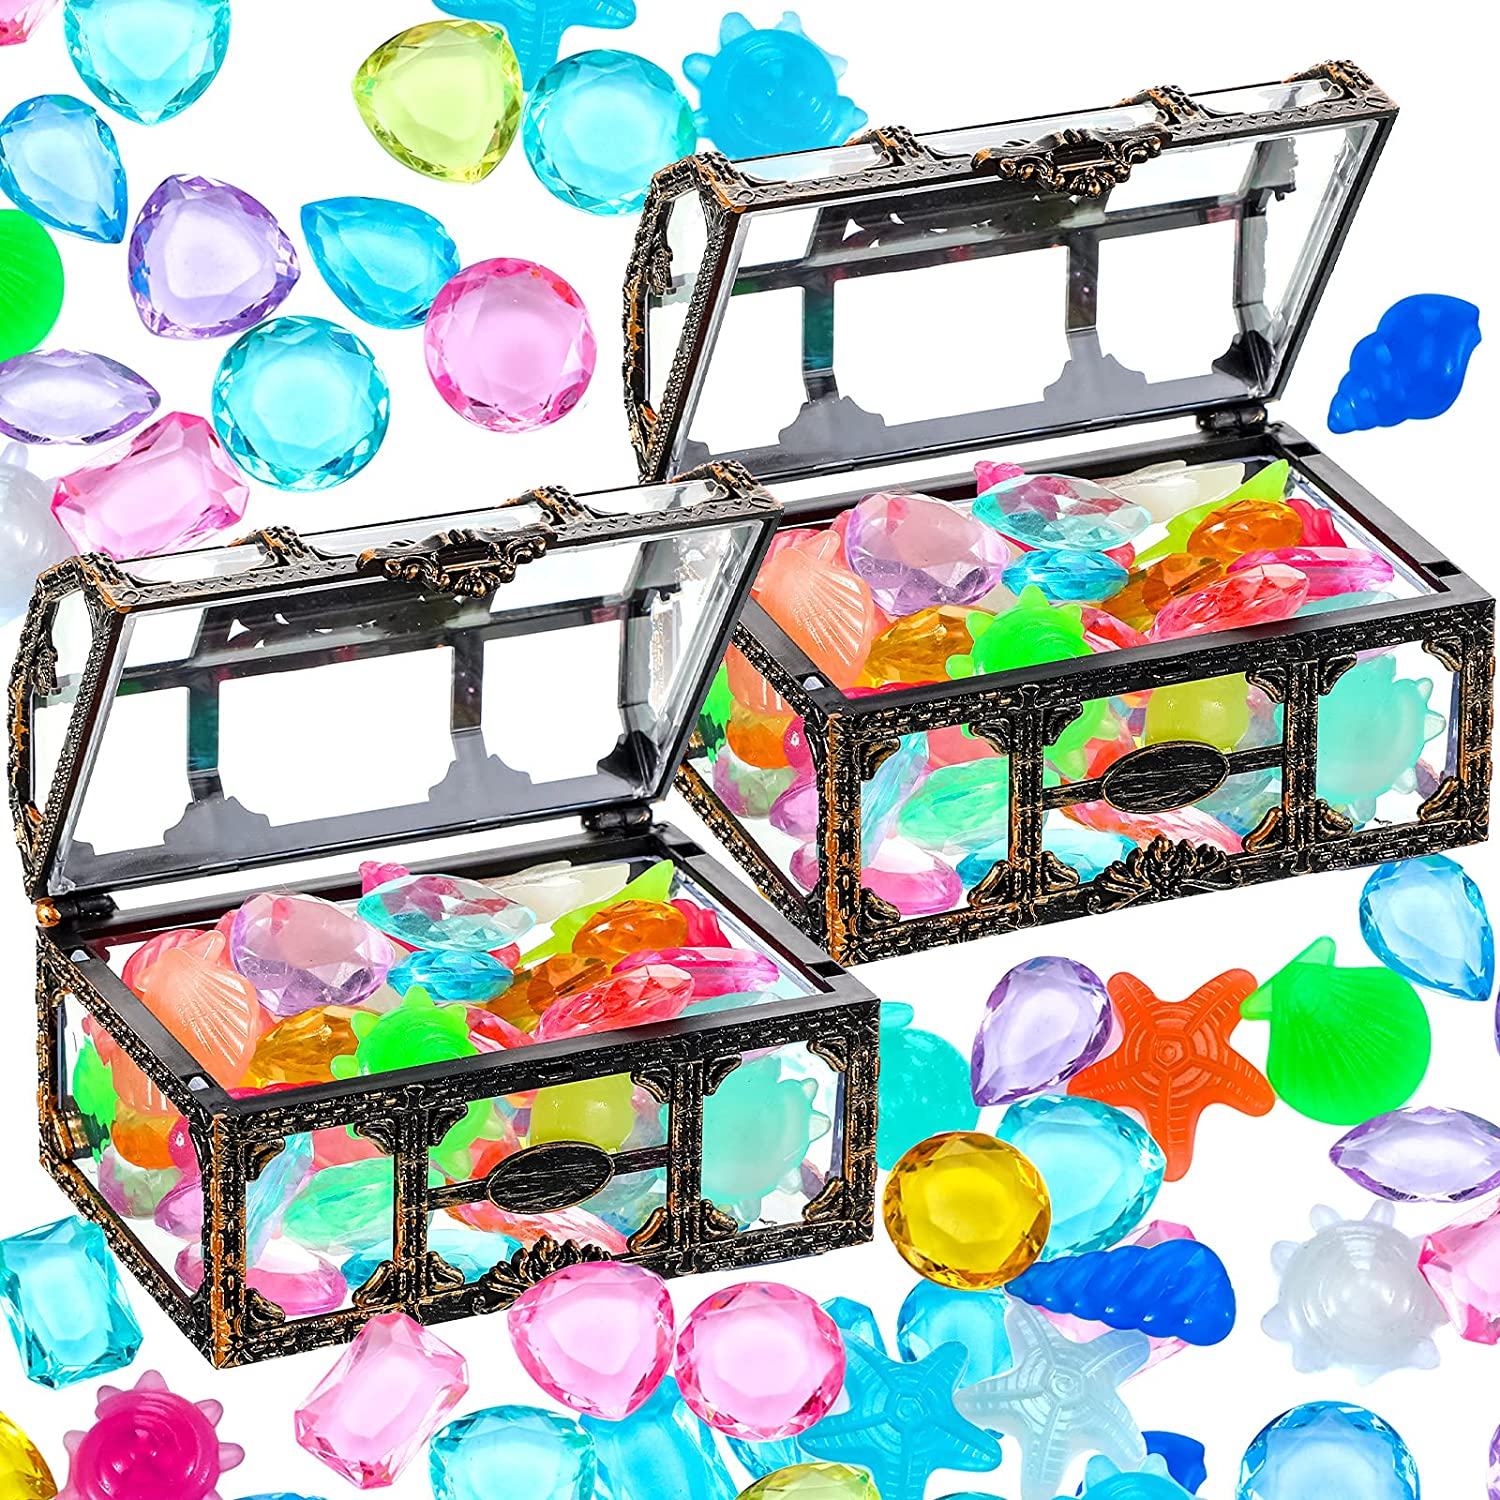 Dive Gem Pool Toys Pirate Gems Max 52% OFF Sinking Latest item Treasure Chest Colorful